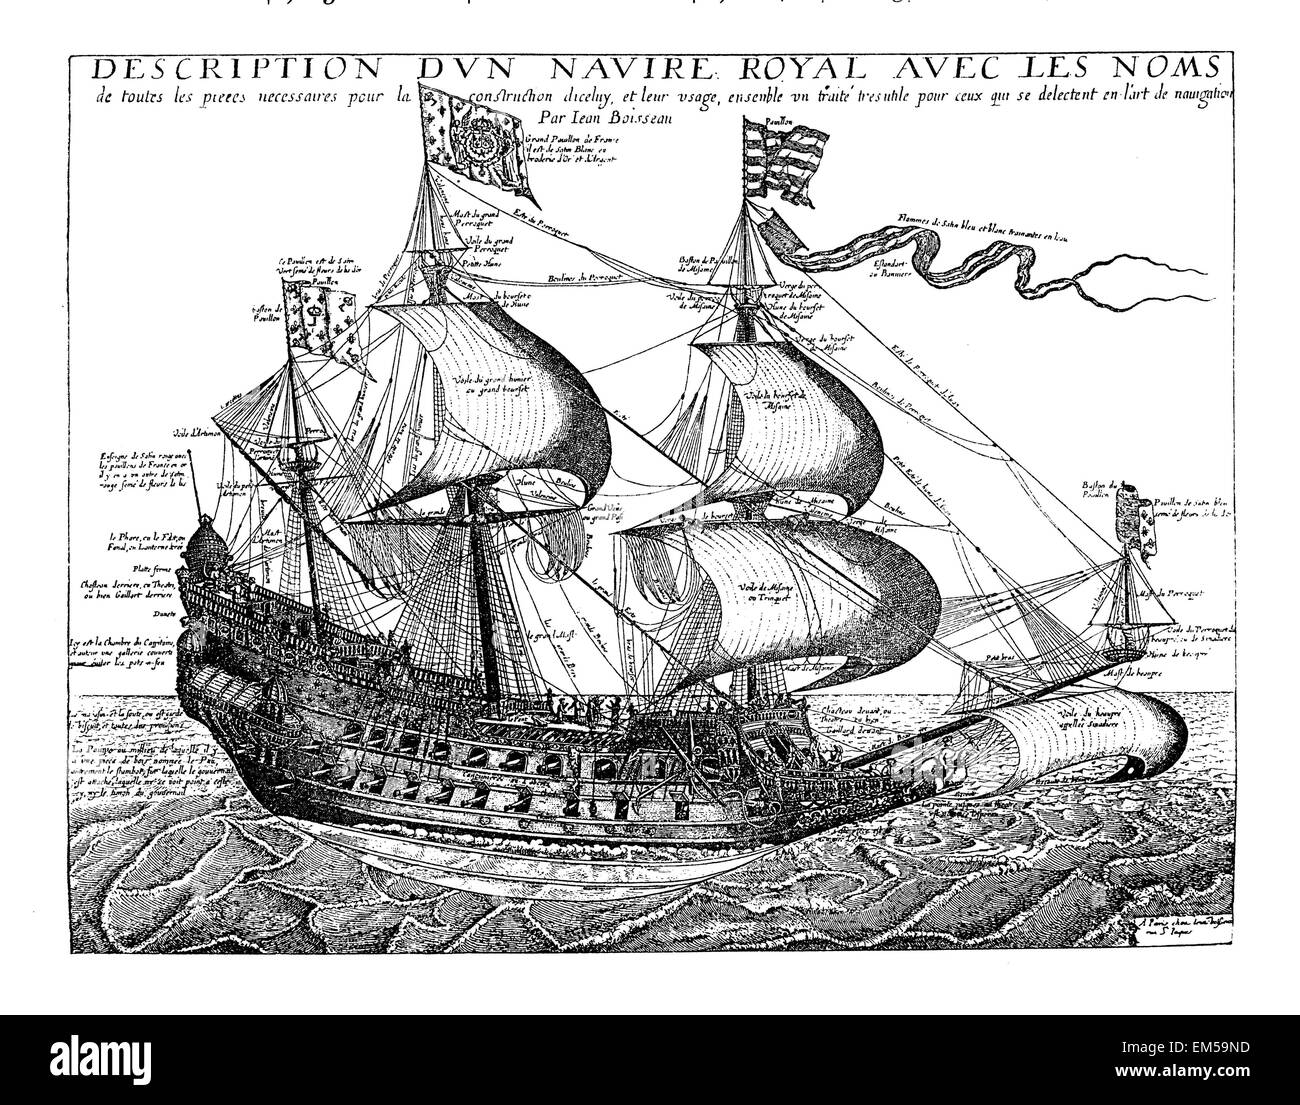 French warship in the mid-17th century. After a contemporary engraving by Jean Boiffeau - Stock Image